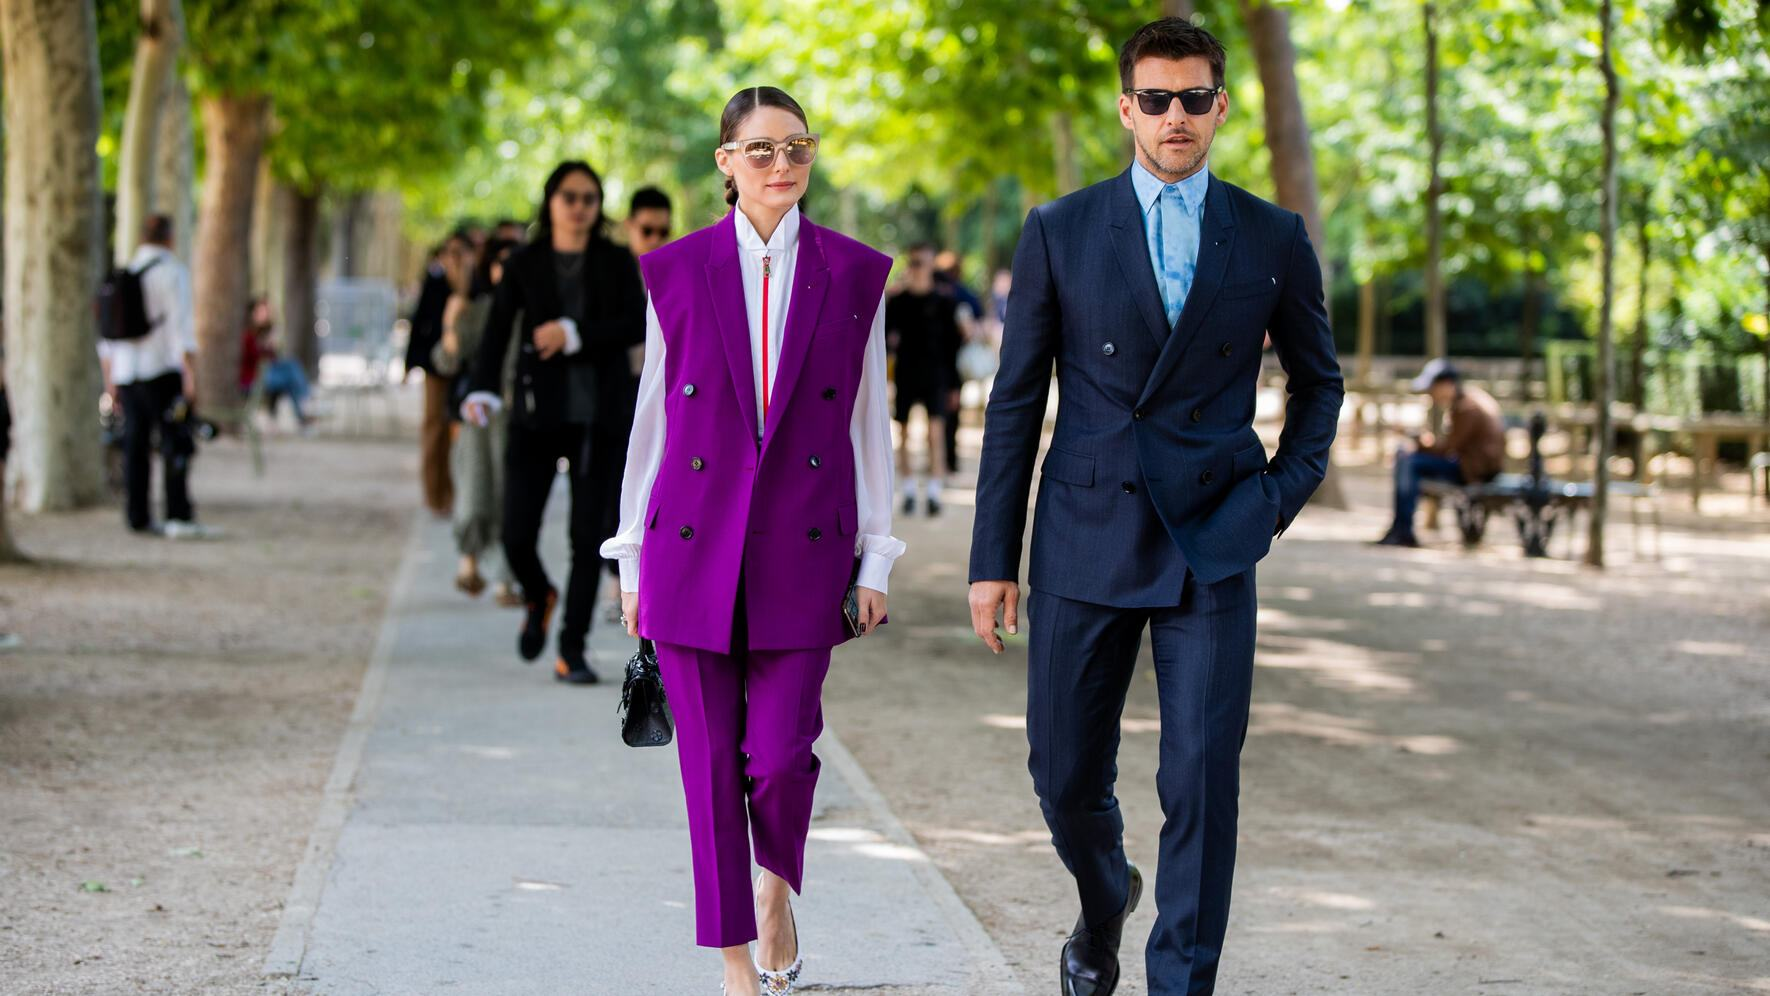 PARIS, FRANCE - JUNE 21: Couple Olivia Palermo and Johannes Huebl seen outside Berluti during Paris Fashion Week - Menswear Spring/Summer 2020 on June 21, 2019 in Paris, France. (Photo by Christian Vierig/Getty Images)